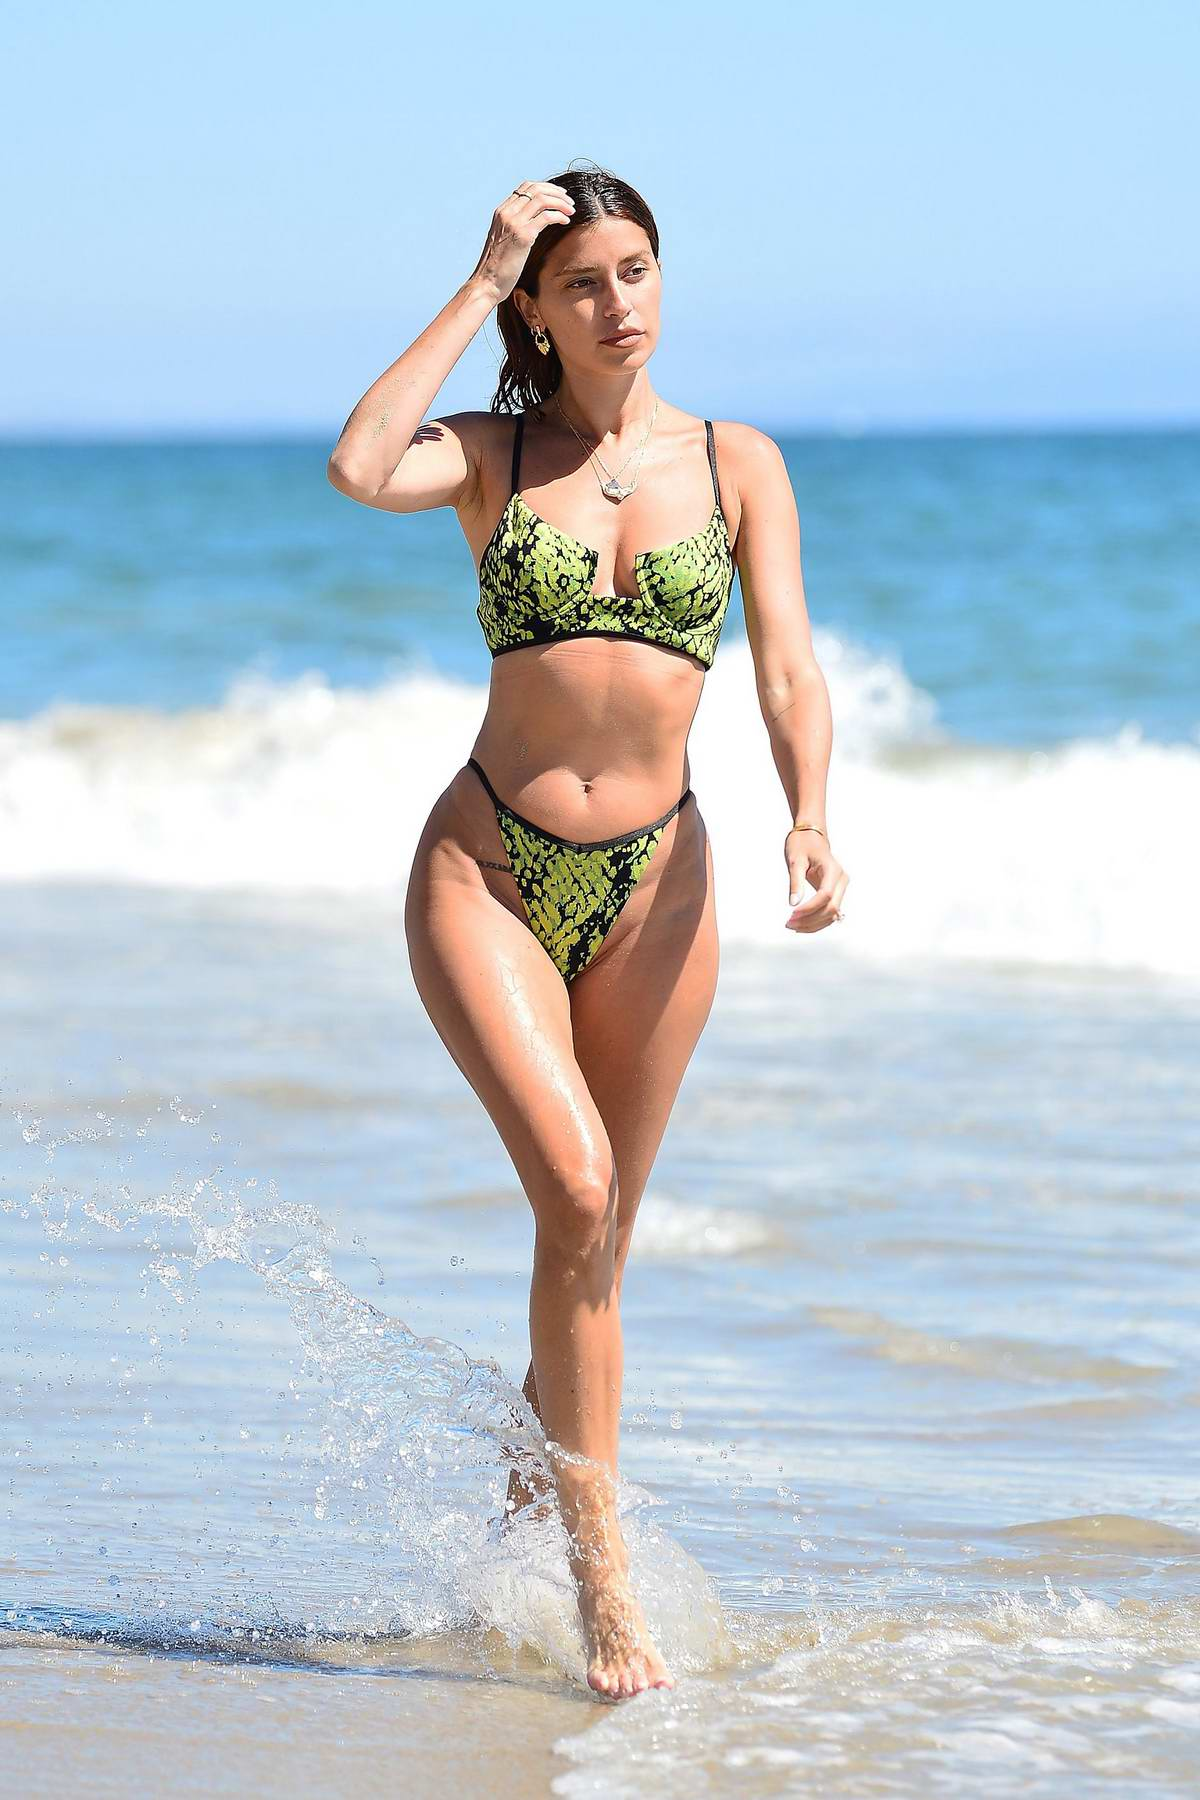 Nicole Williams puts on a green bikini for a beach day in Malibu, California